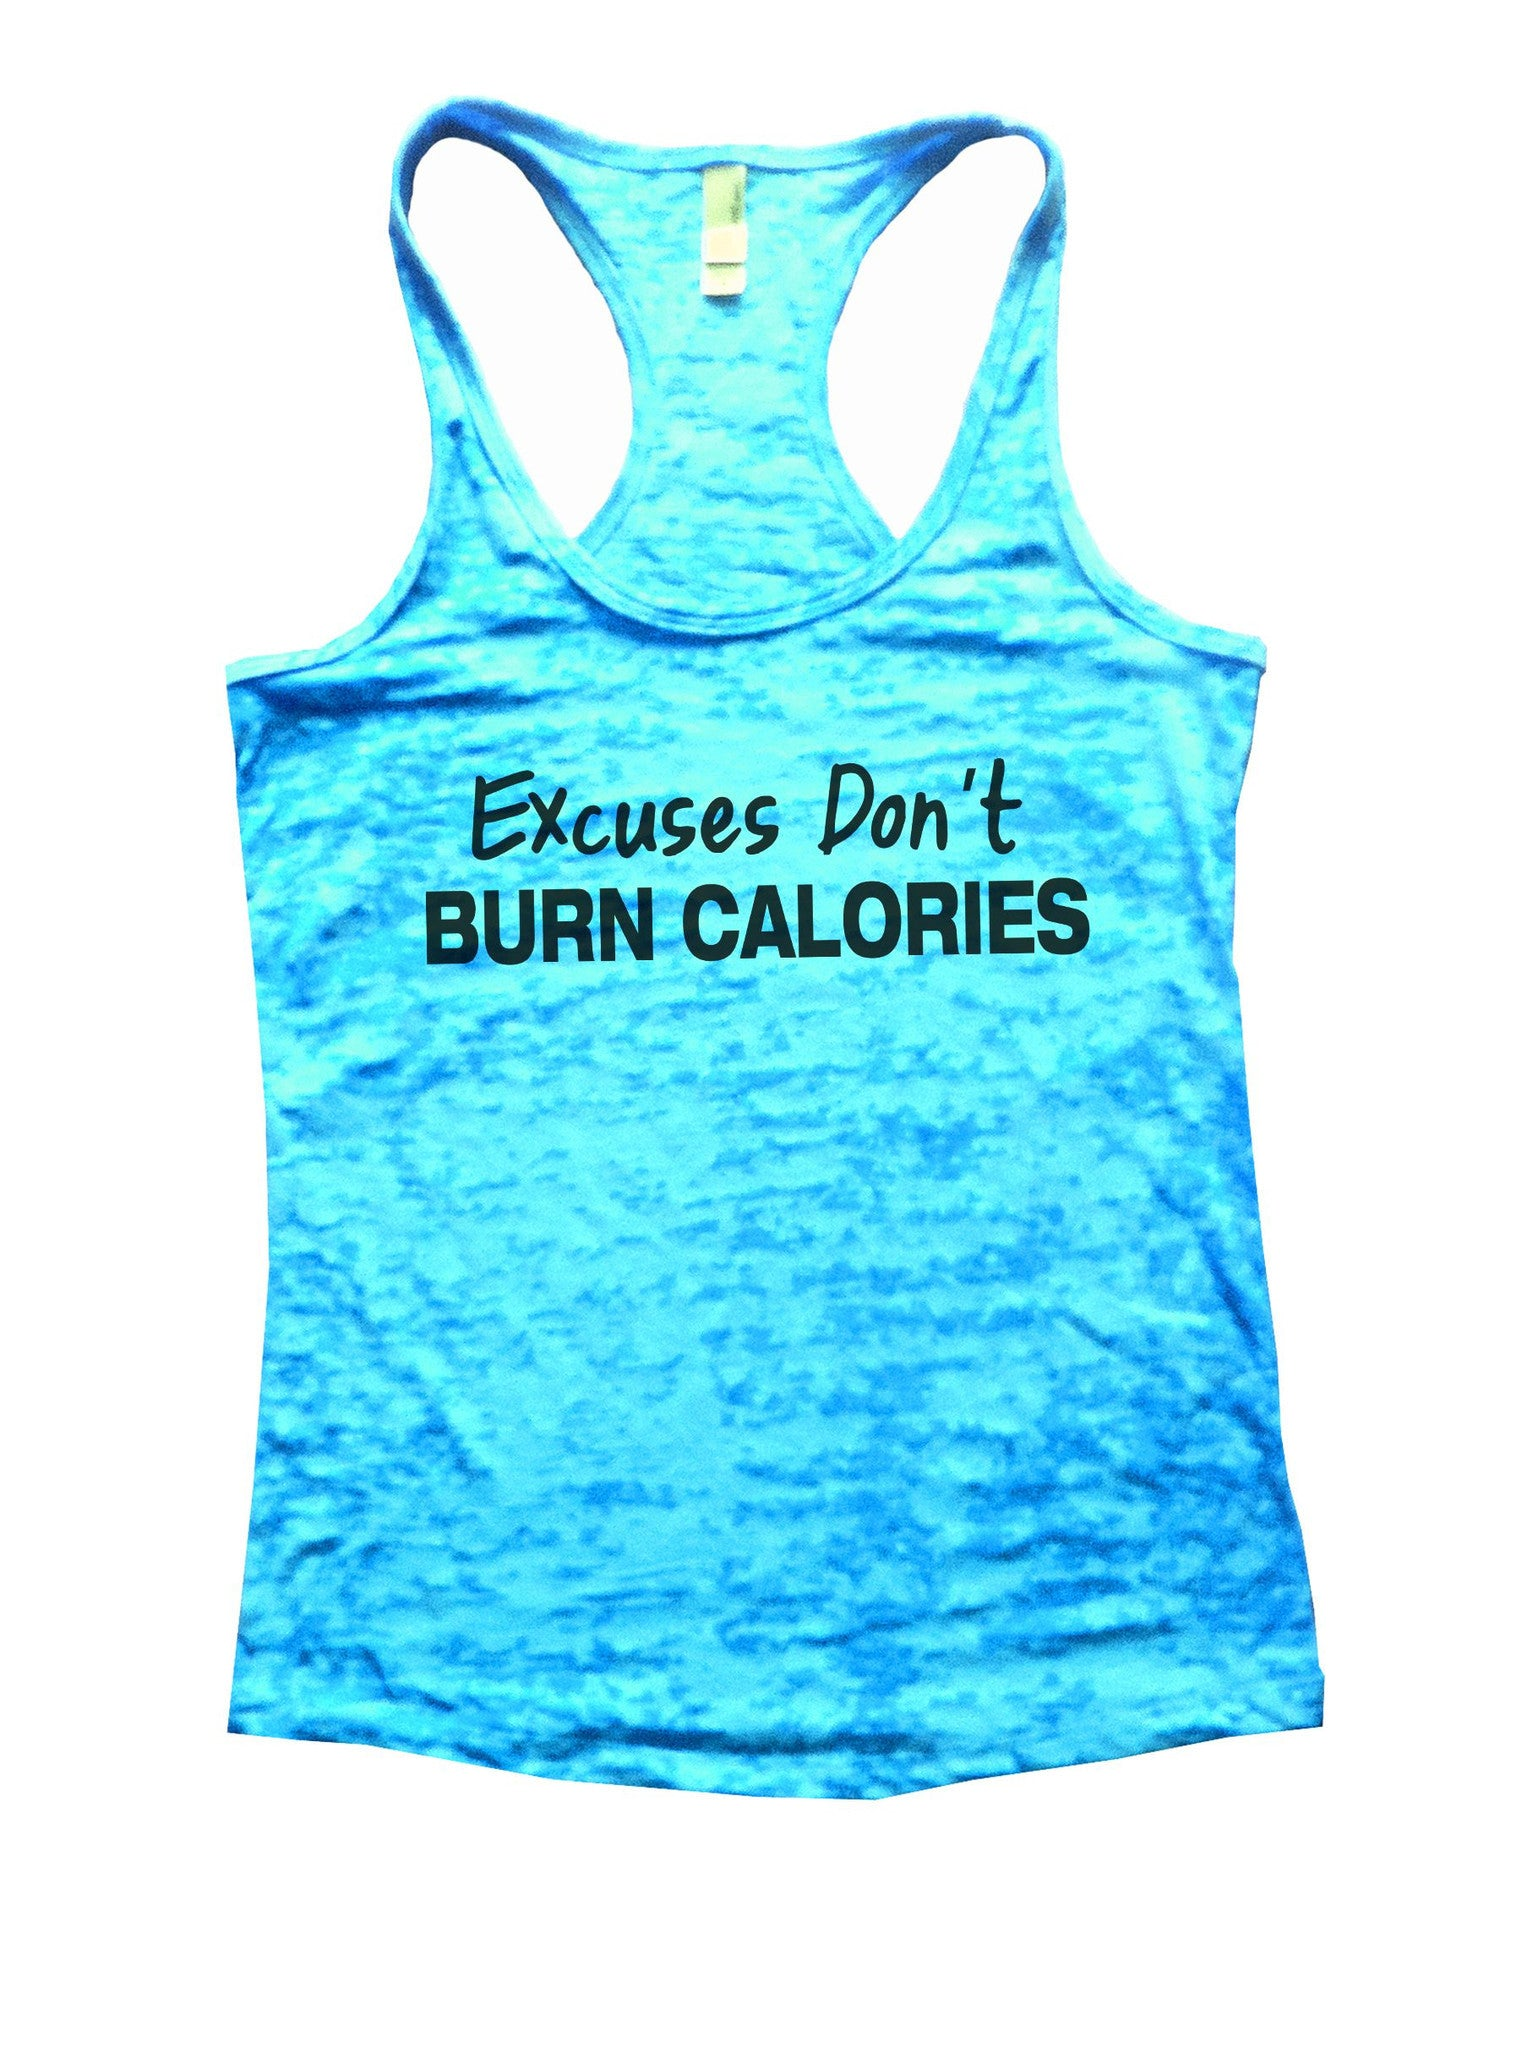 Excuses Don't Burn Calories Burnout Tank Top By BurnoutTankTops.com - 843 - Funny Shirts Tank Tops Burnouts and Triblends  - 4